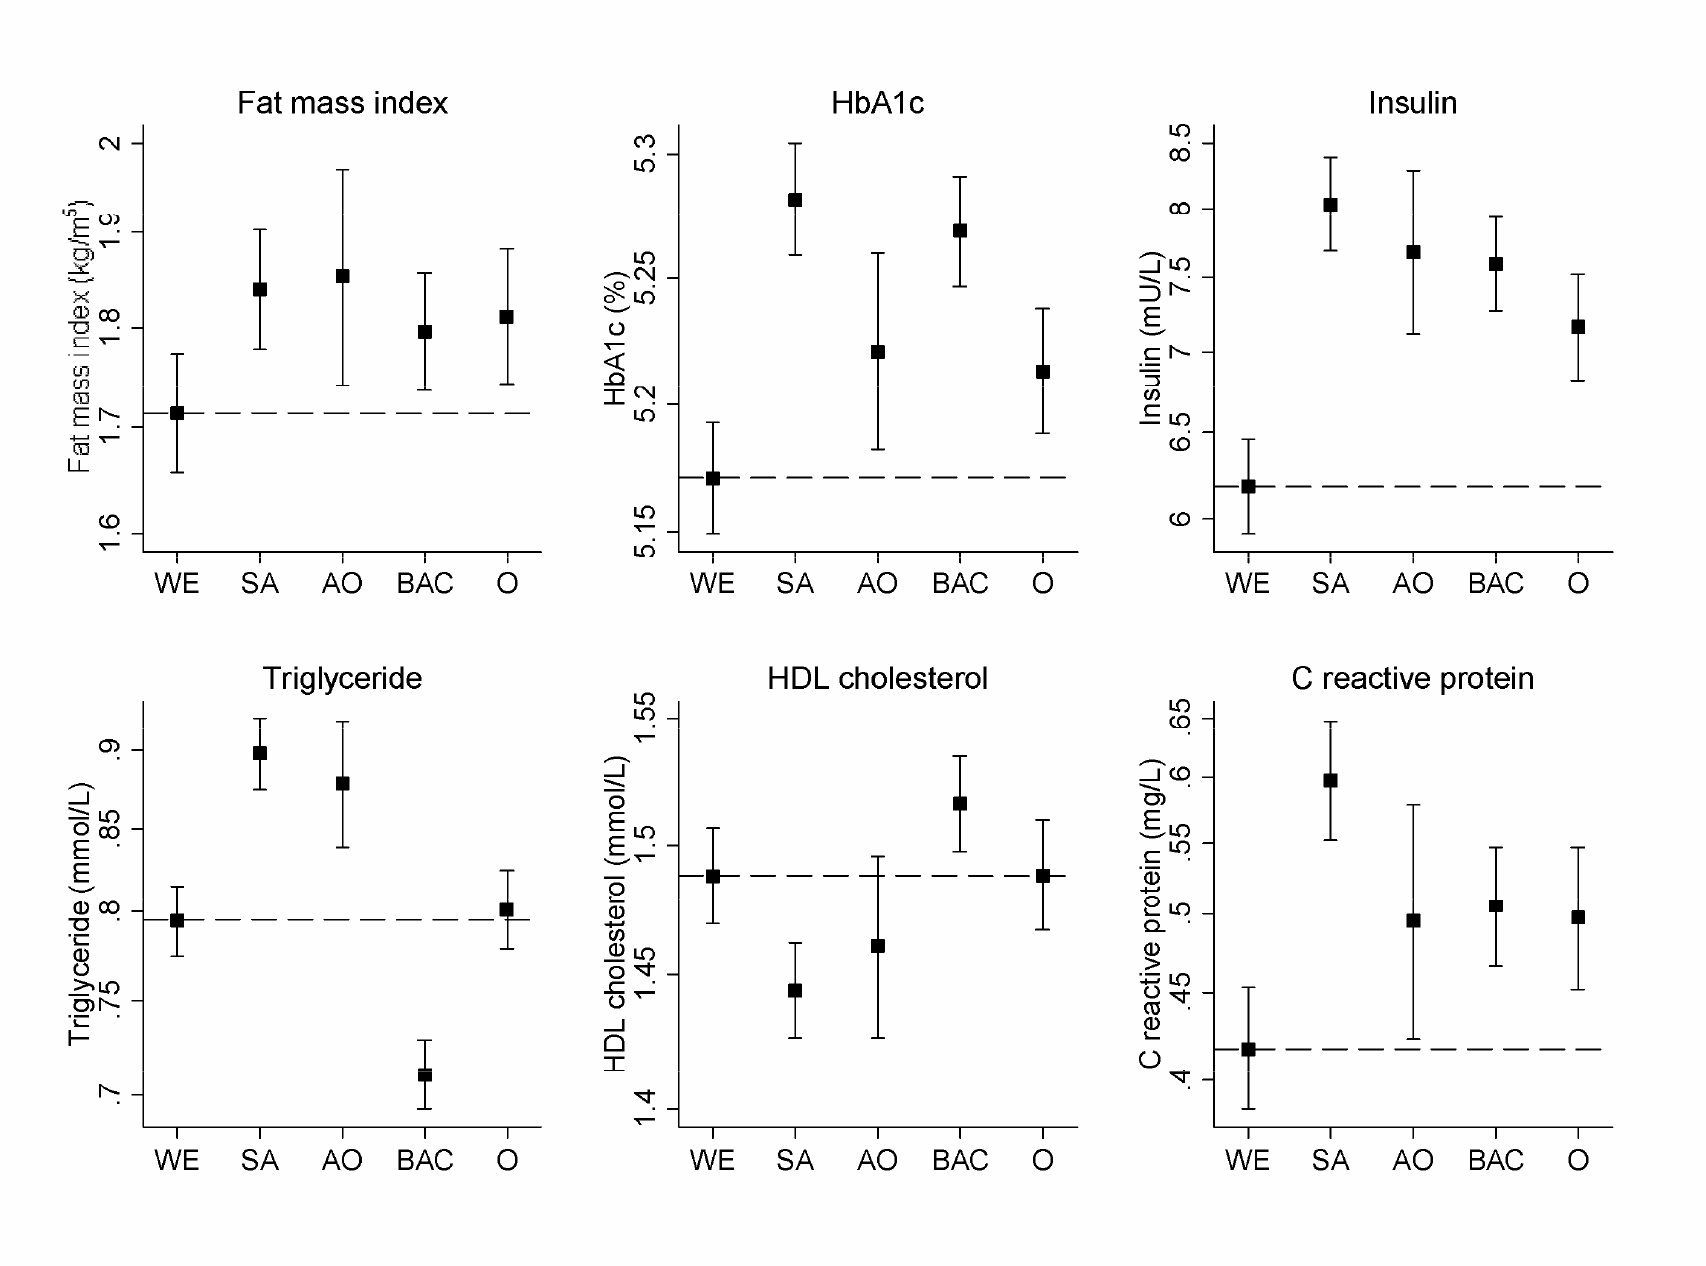 Geometric means and 95% confidence intervals for fat mass index and selected blood markers by ethnic group.